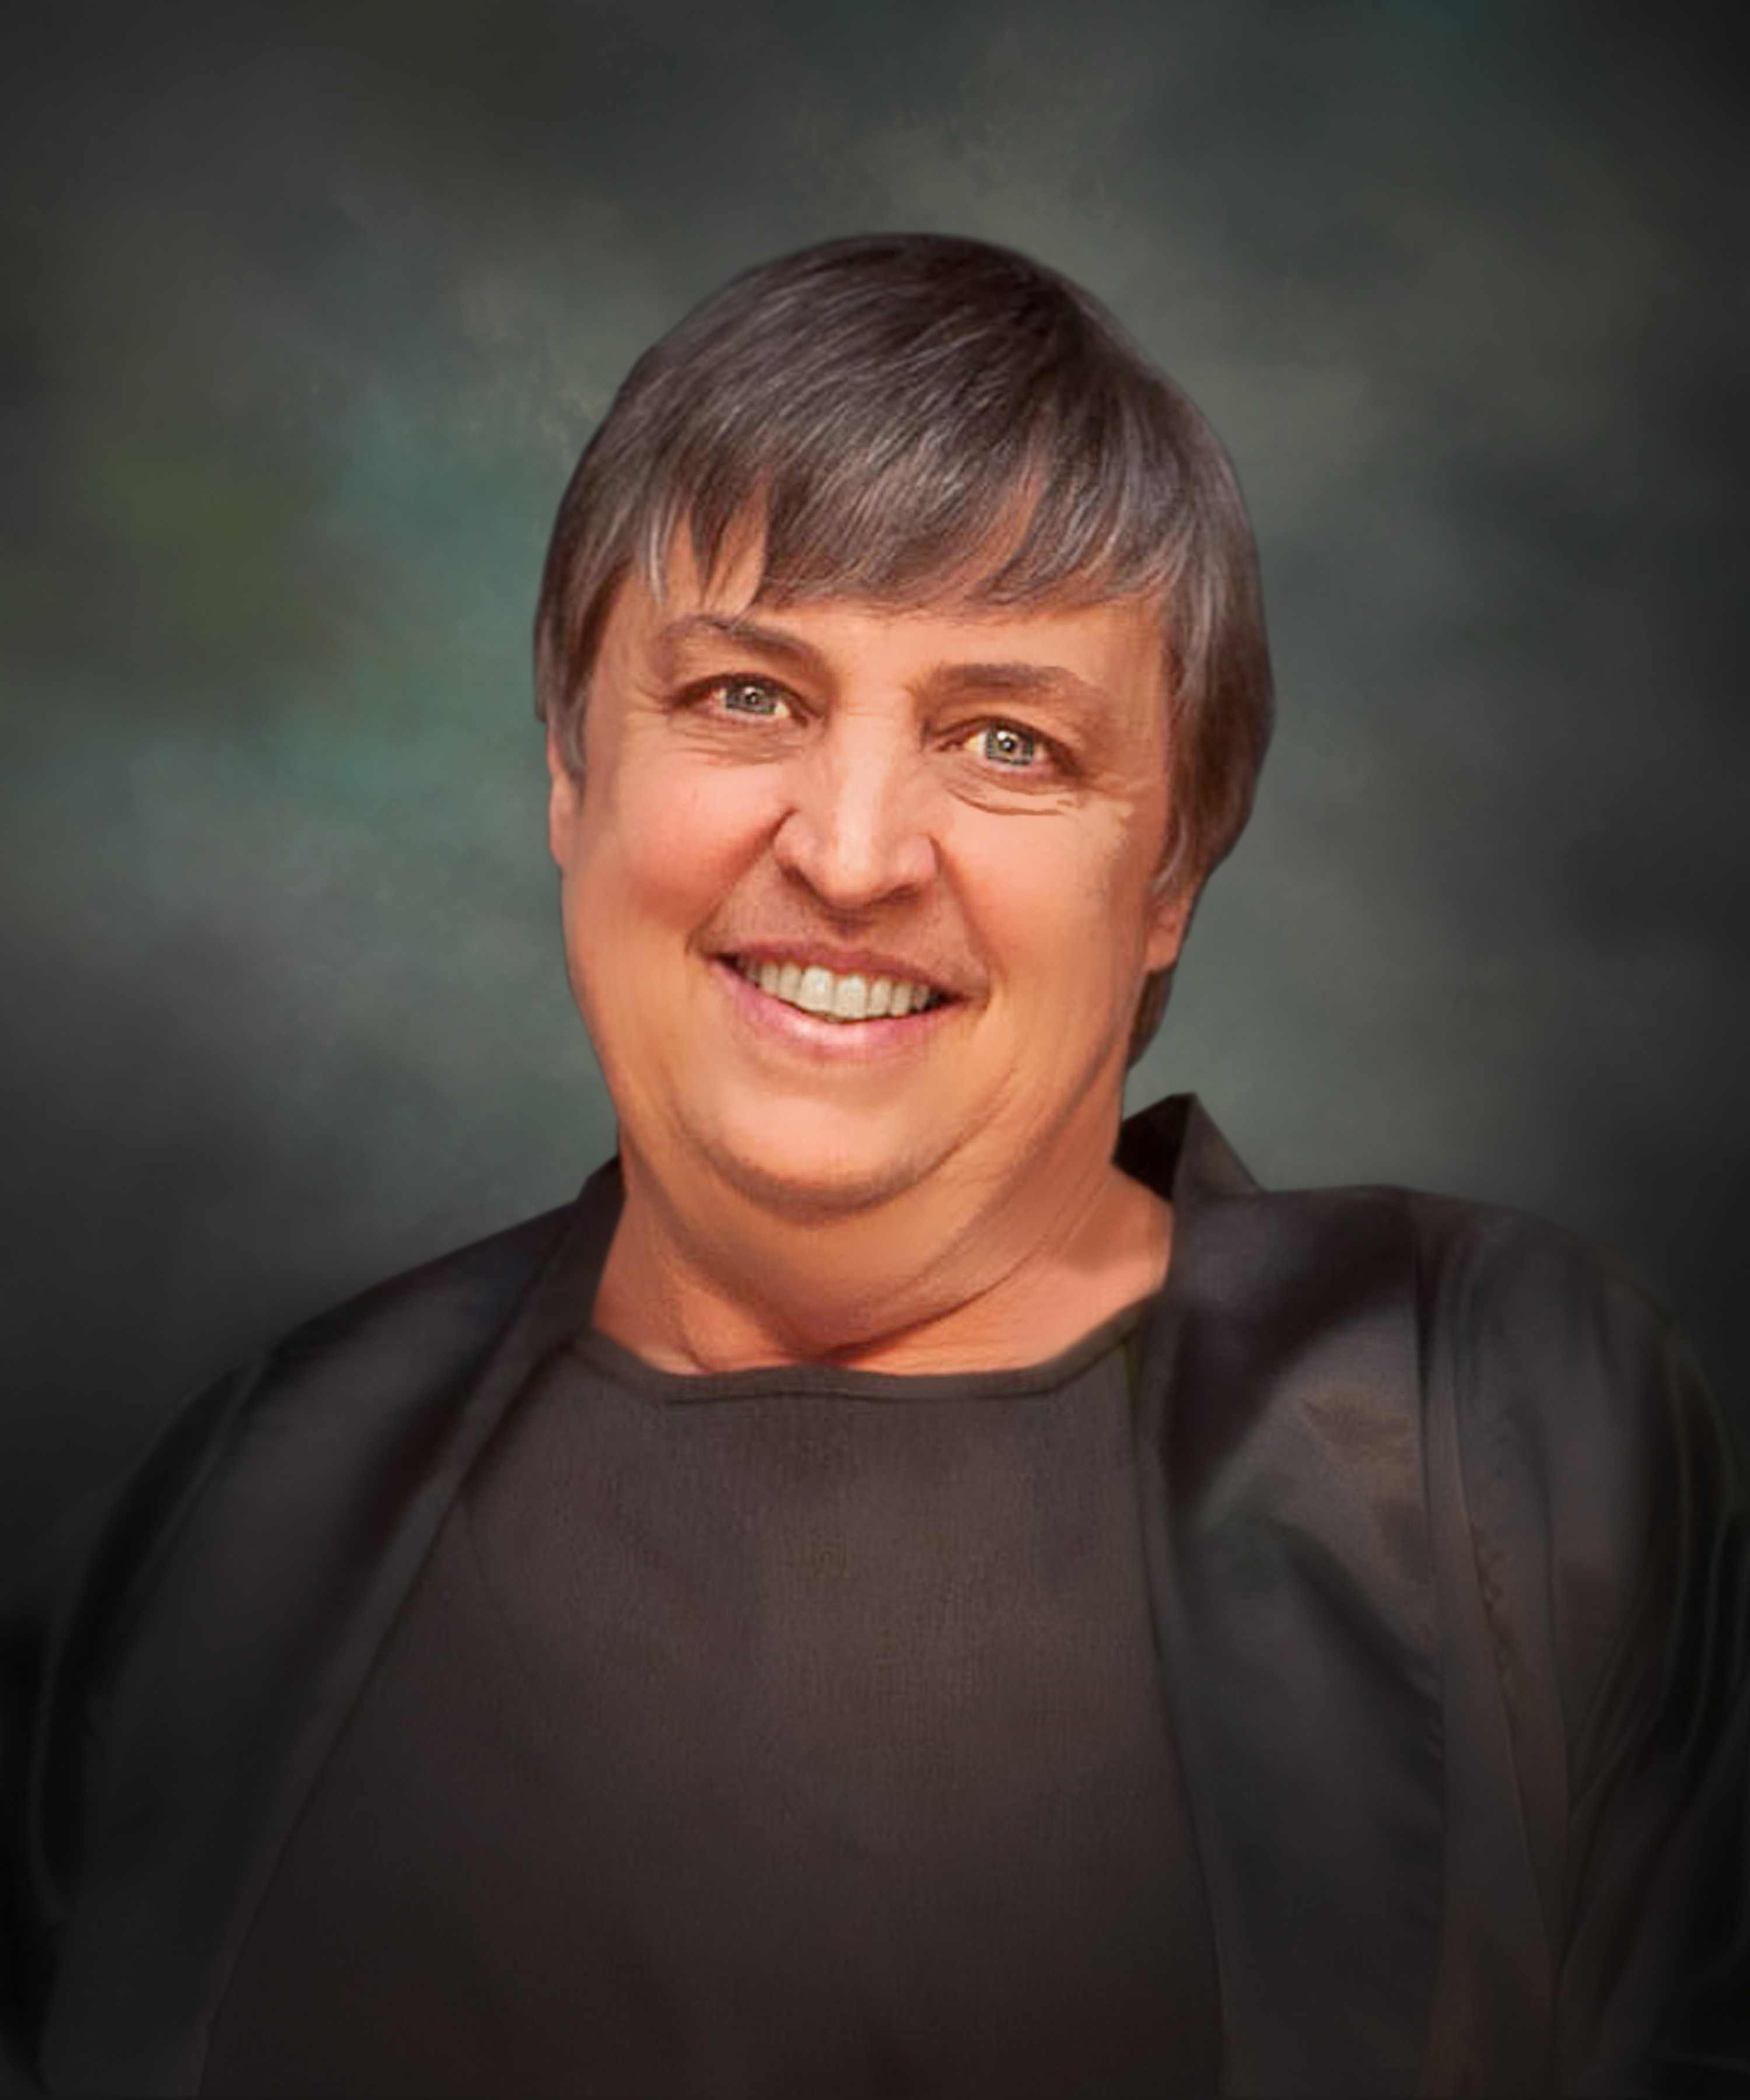 Retired 4-H Specialist and Senior Public Service Associate Diane Davies will be honored with the Georgia 4-H Lifetime Achievement Award for her dedication to implementing and growing the Georgia 4-H Environmental Education Program.